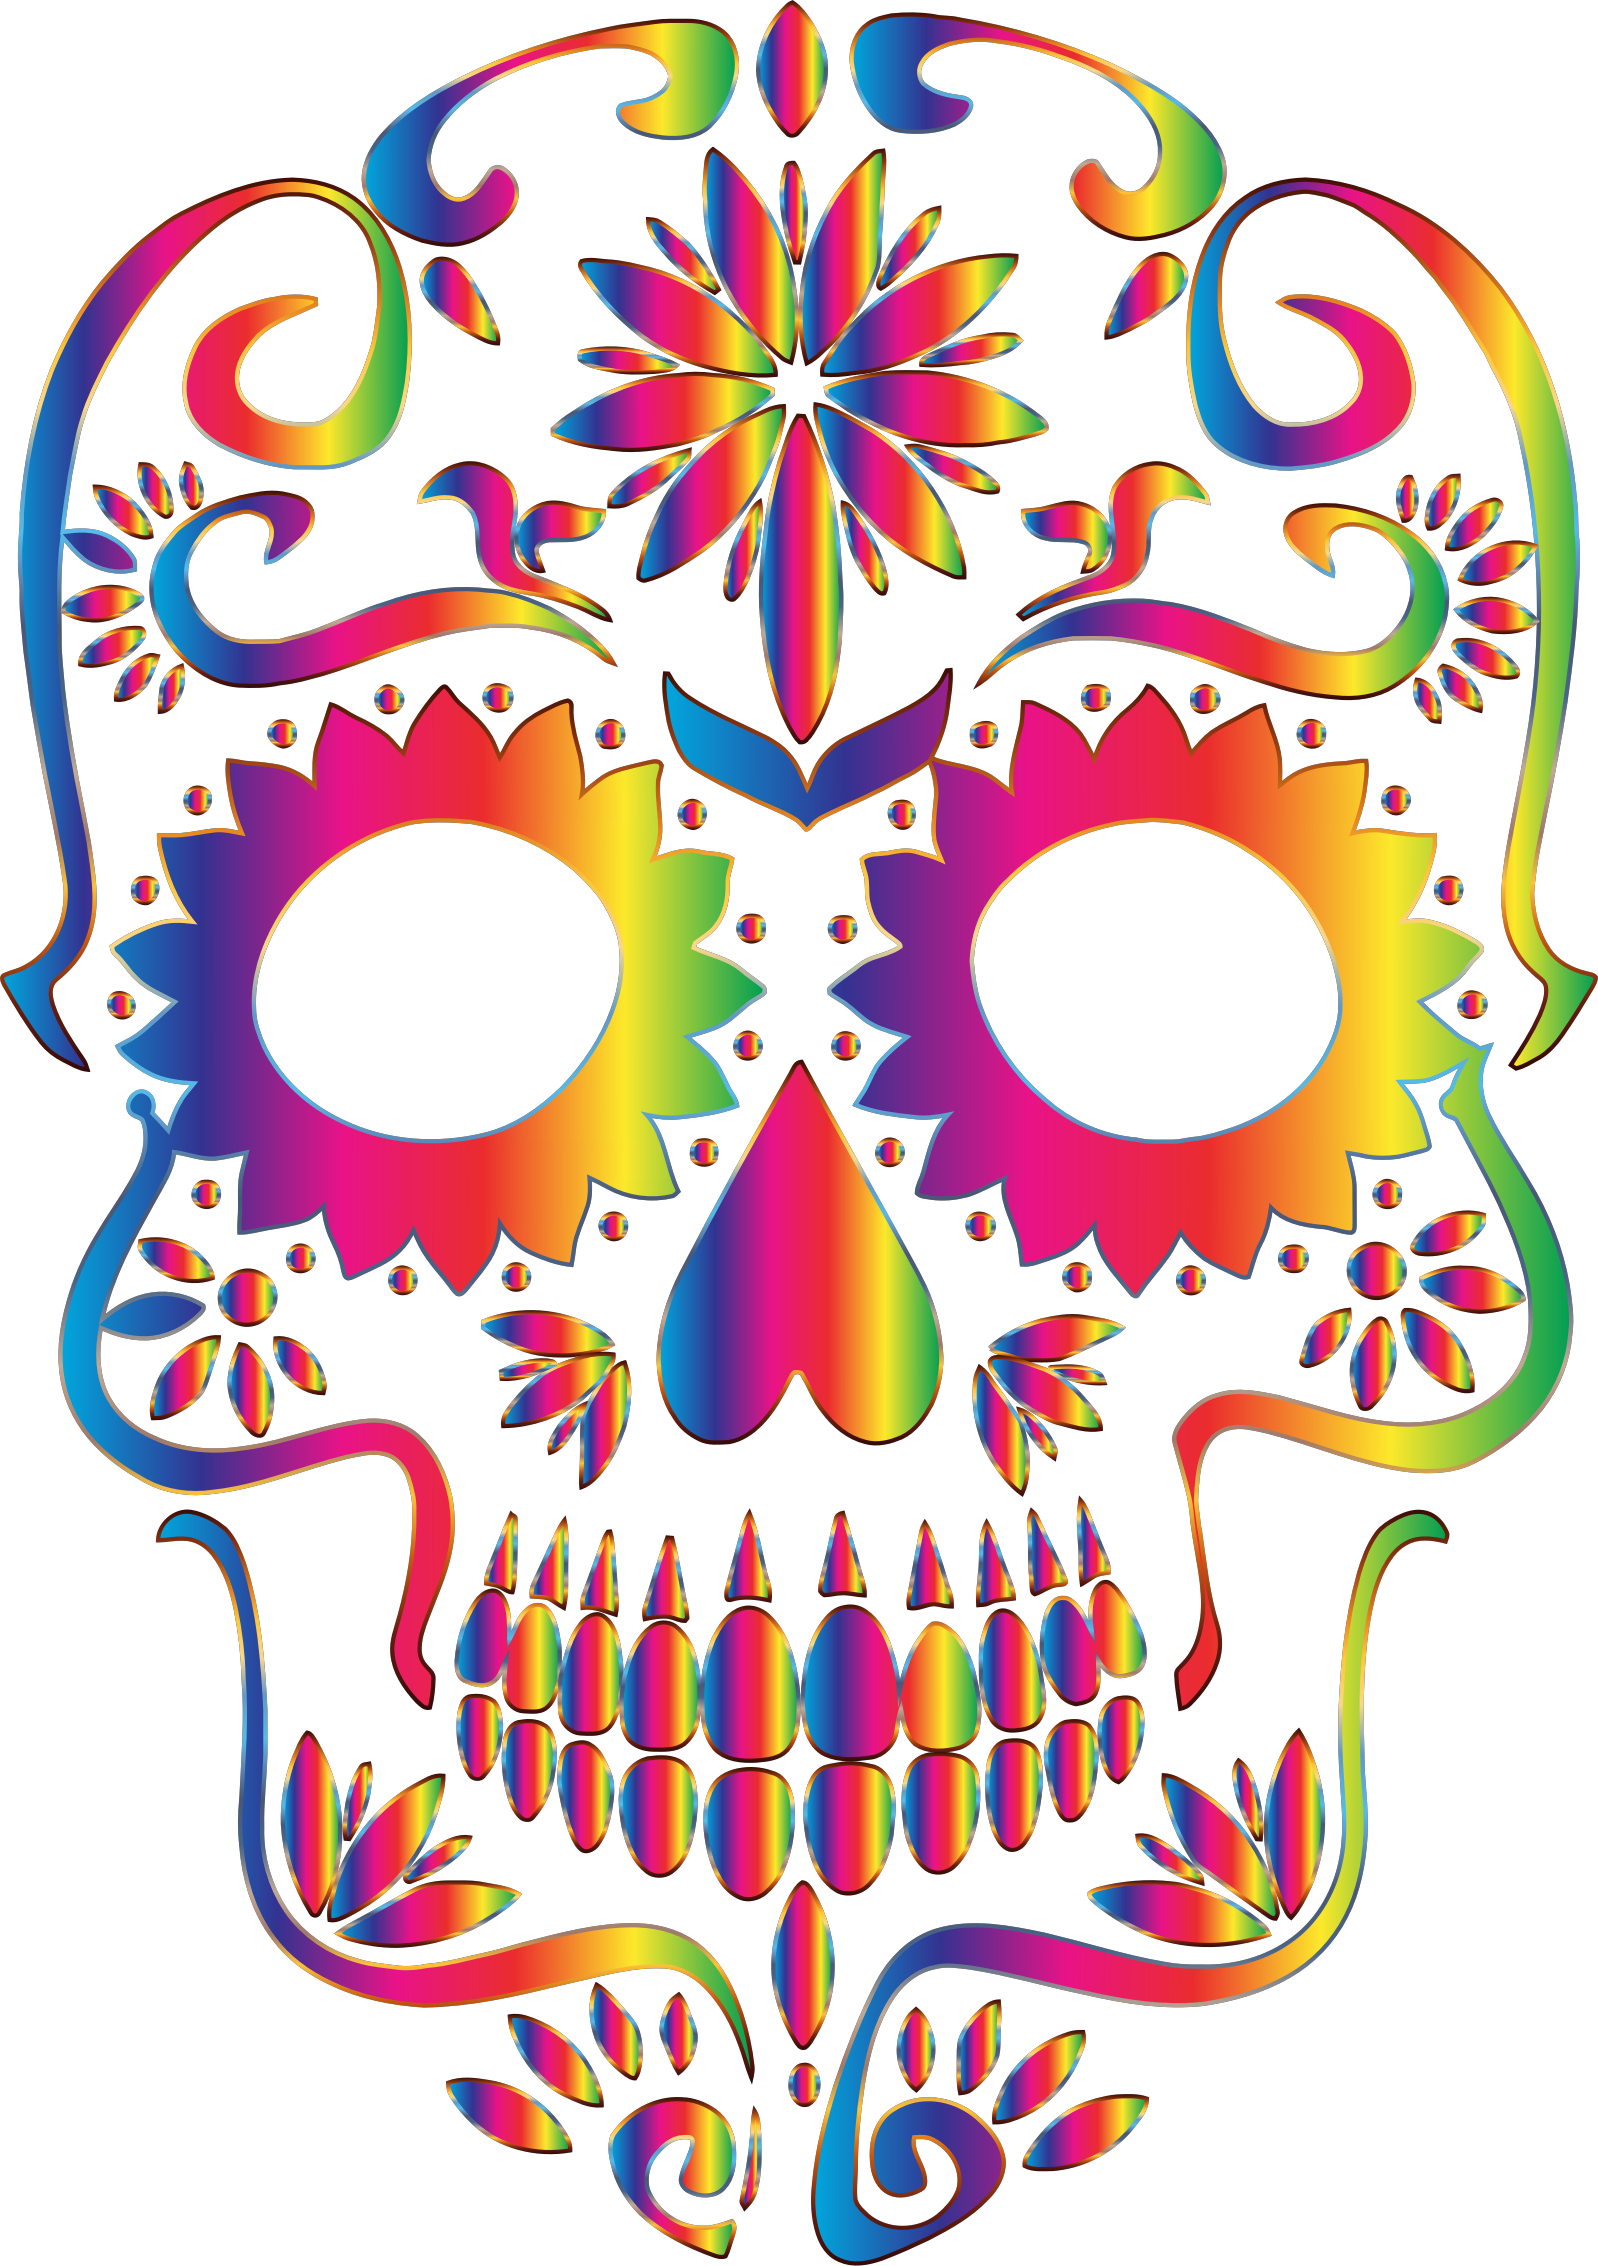 Rainbow Sugar Skull Silhouette No Background by GDJ